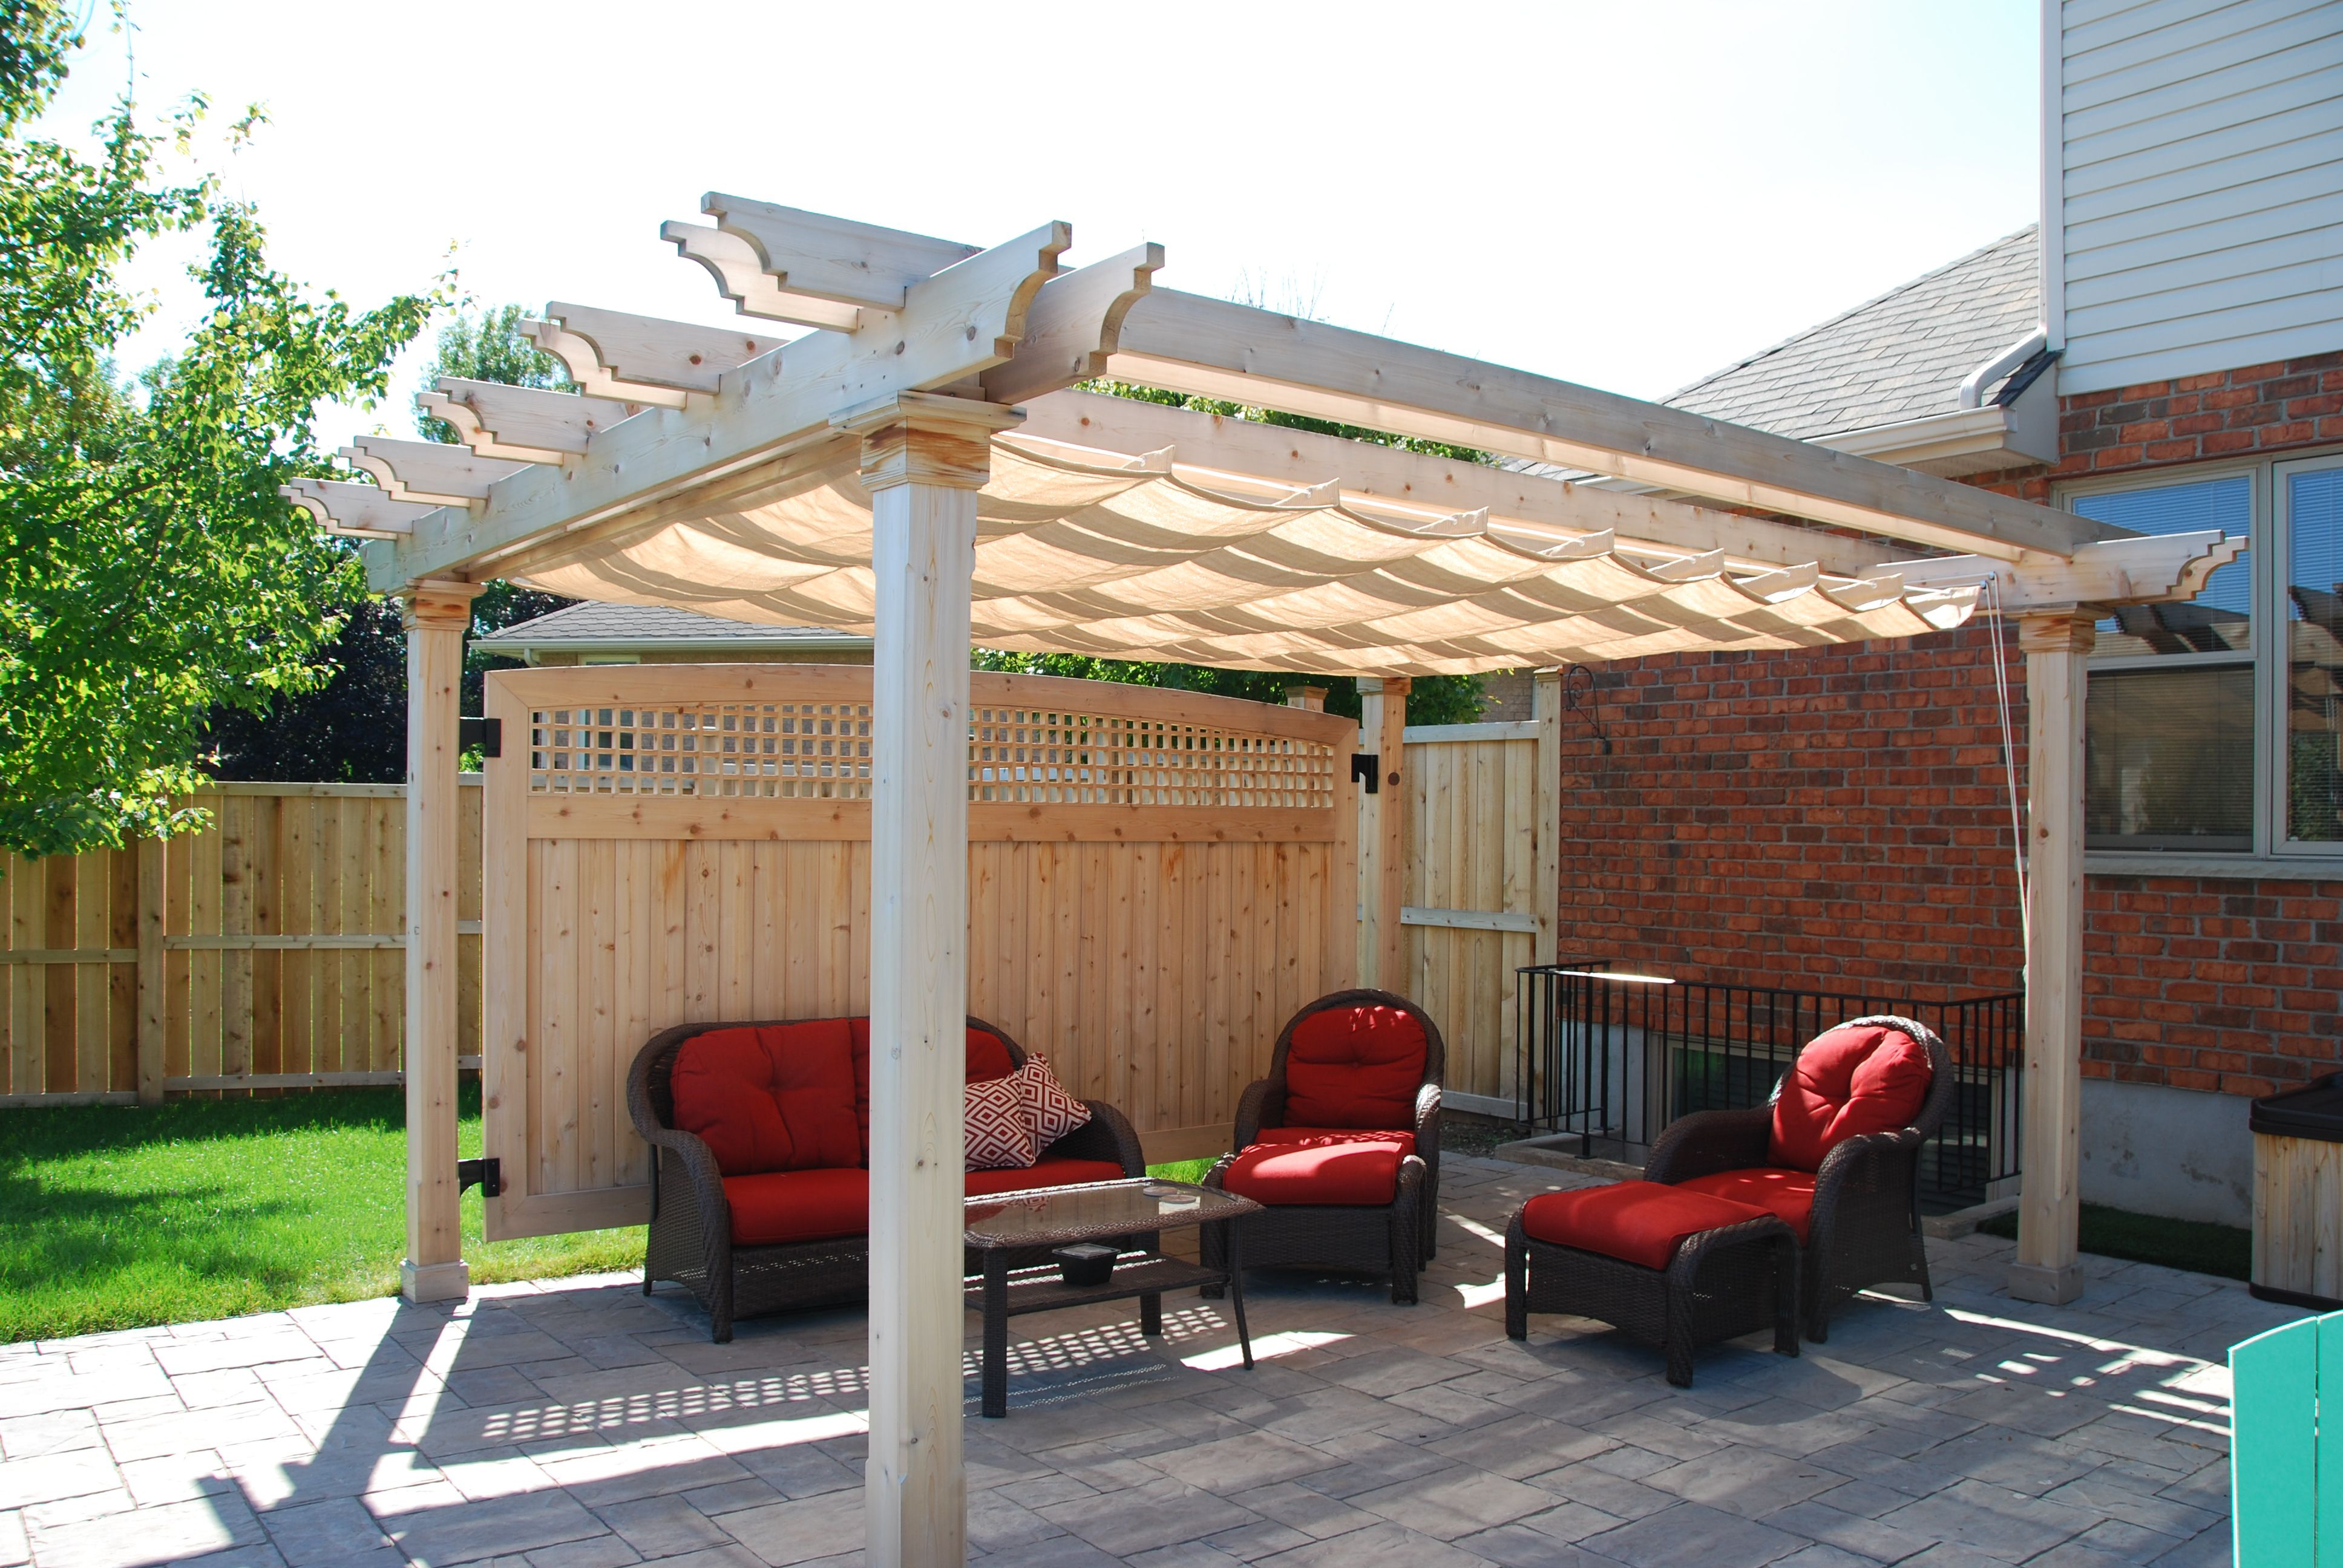 White Colonial Design Pergola Attached To House With Off White Haromonica